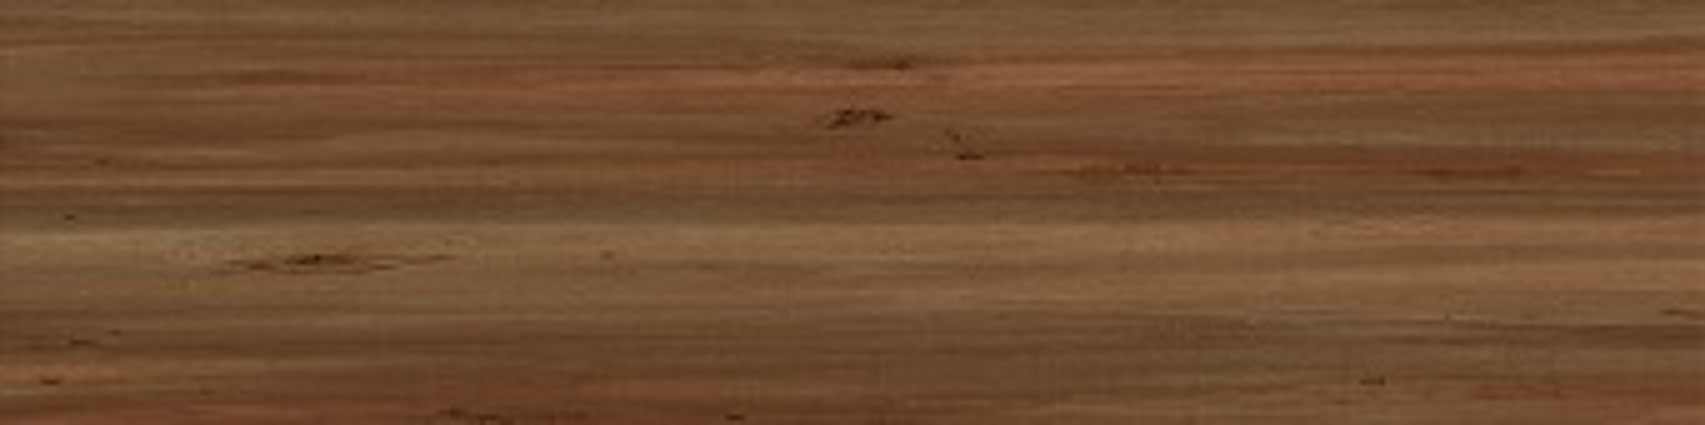 RIPOSA - Brown floor tile - 15x60.jpg